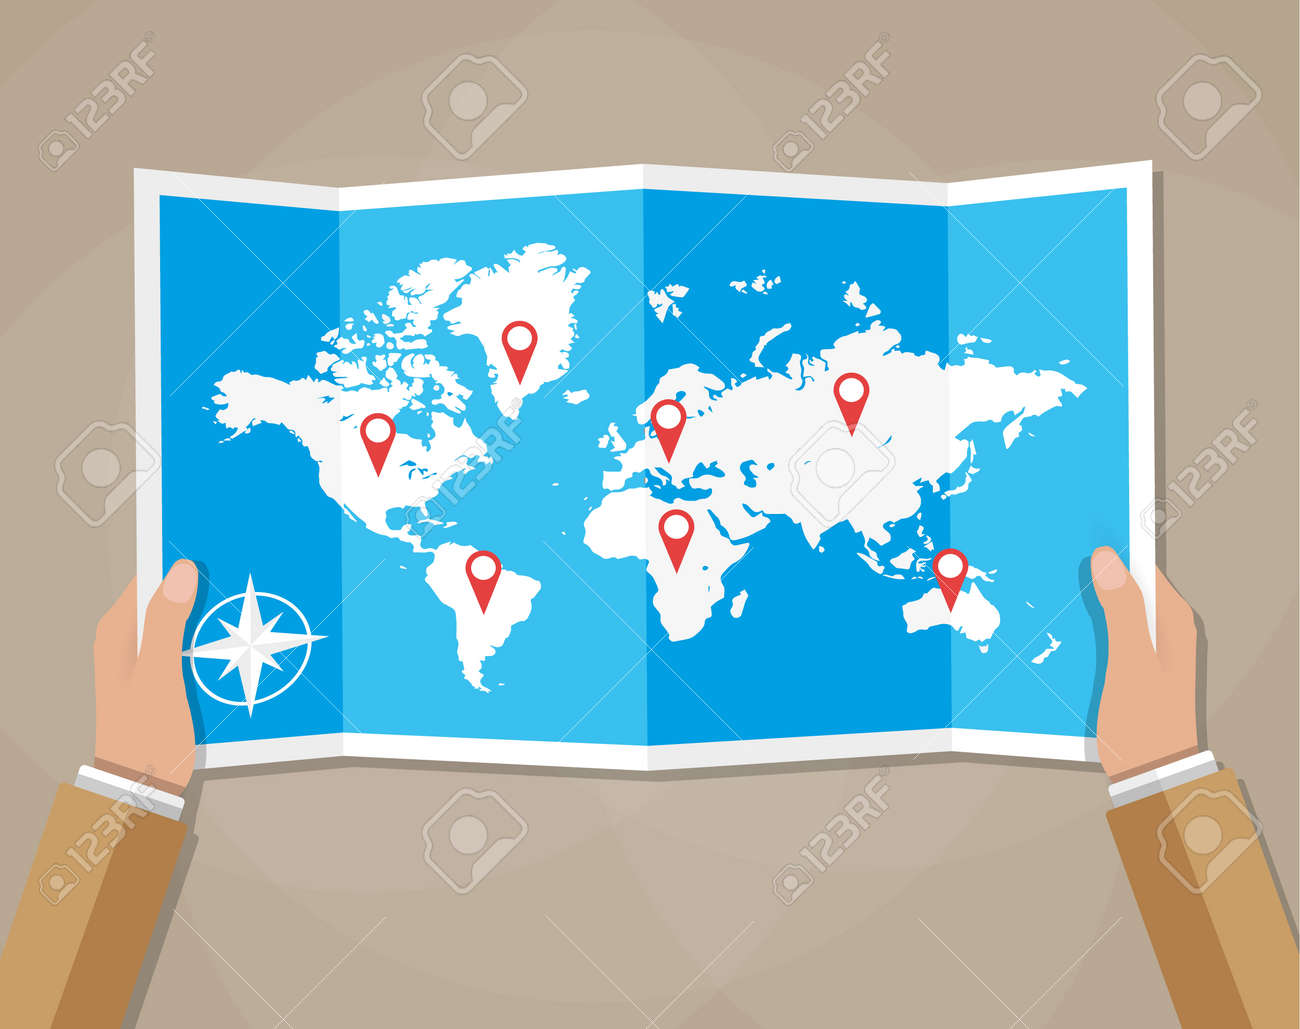 Cartoon hands hold folded paper map of world with color point cartoon hands hold folded paper map of world with color point markers world map countries gumiabroncs Image collections